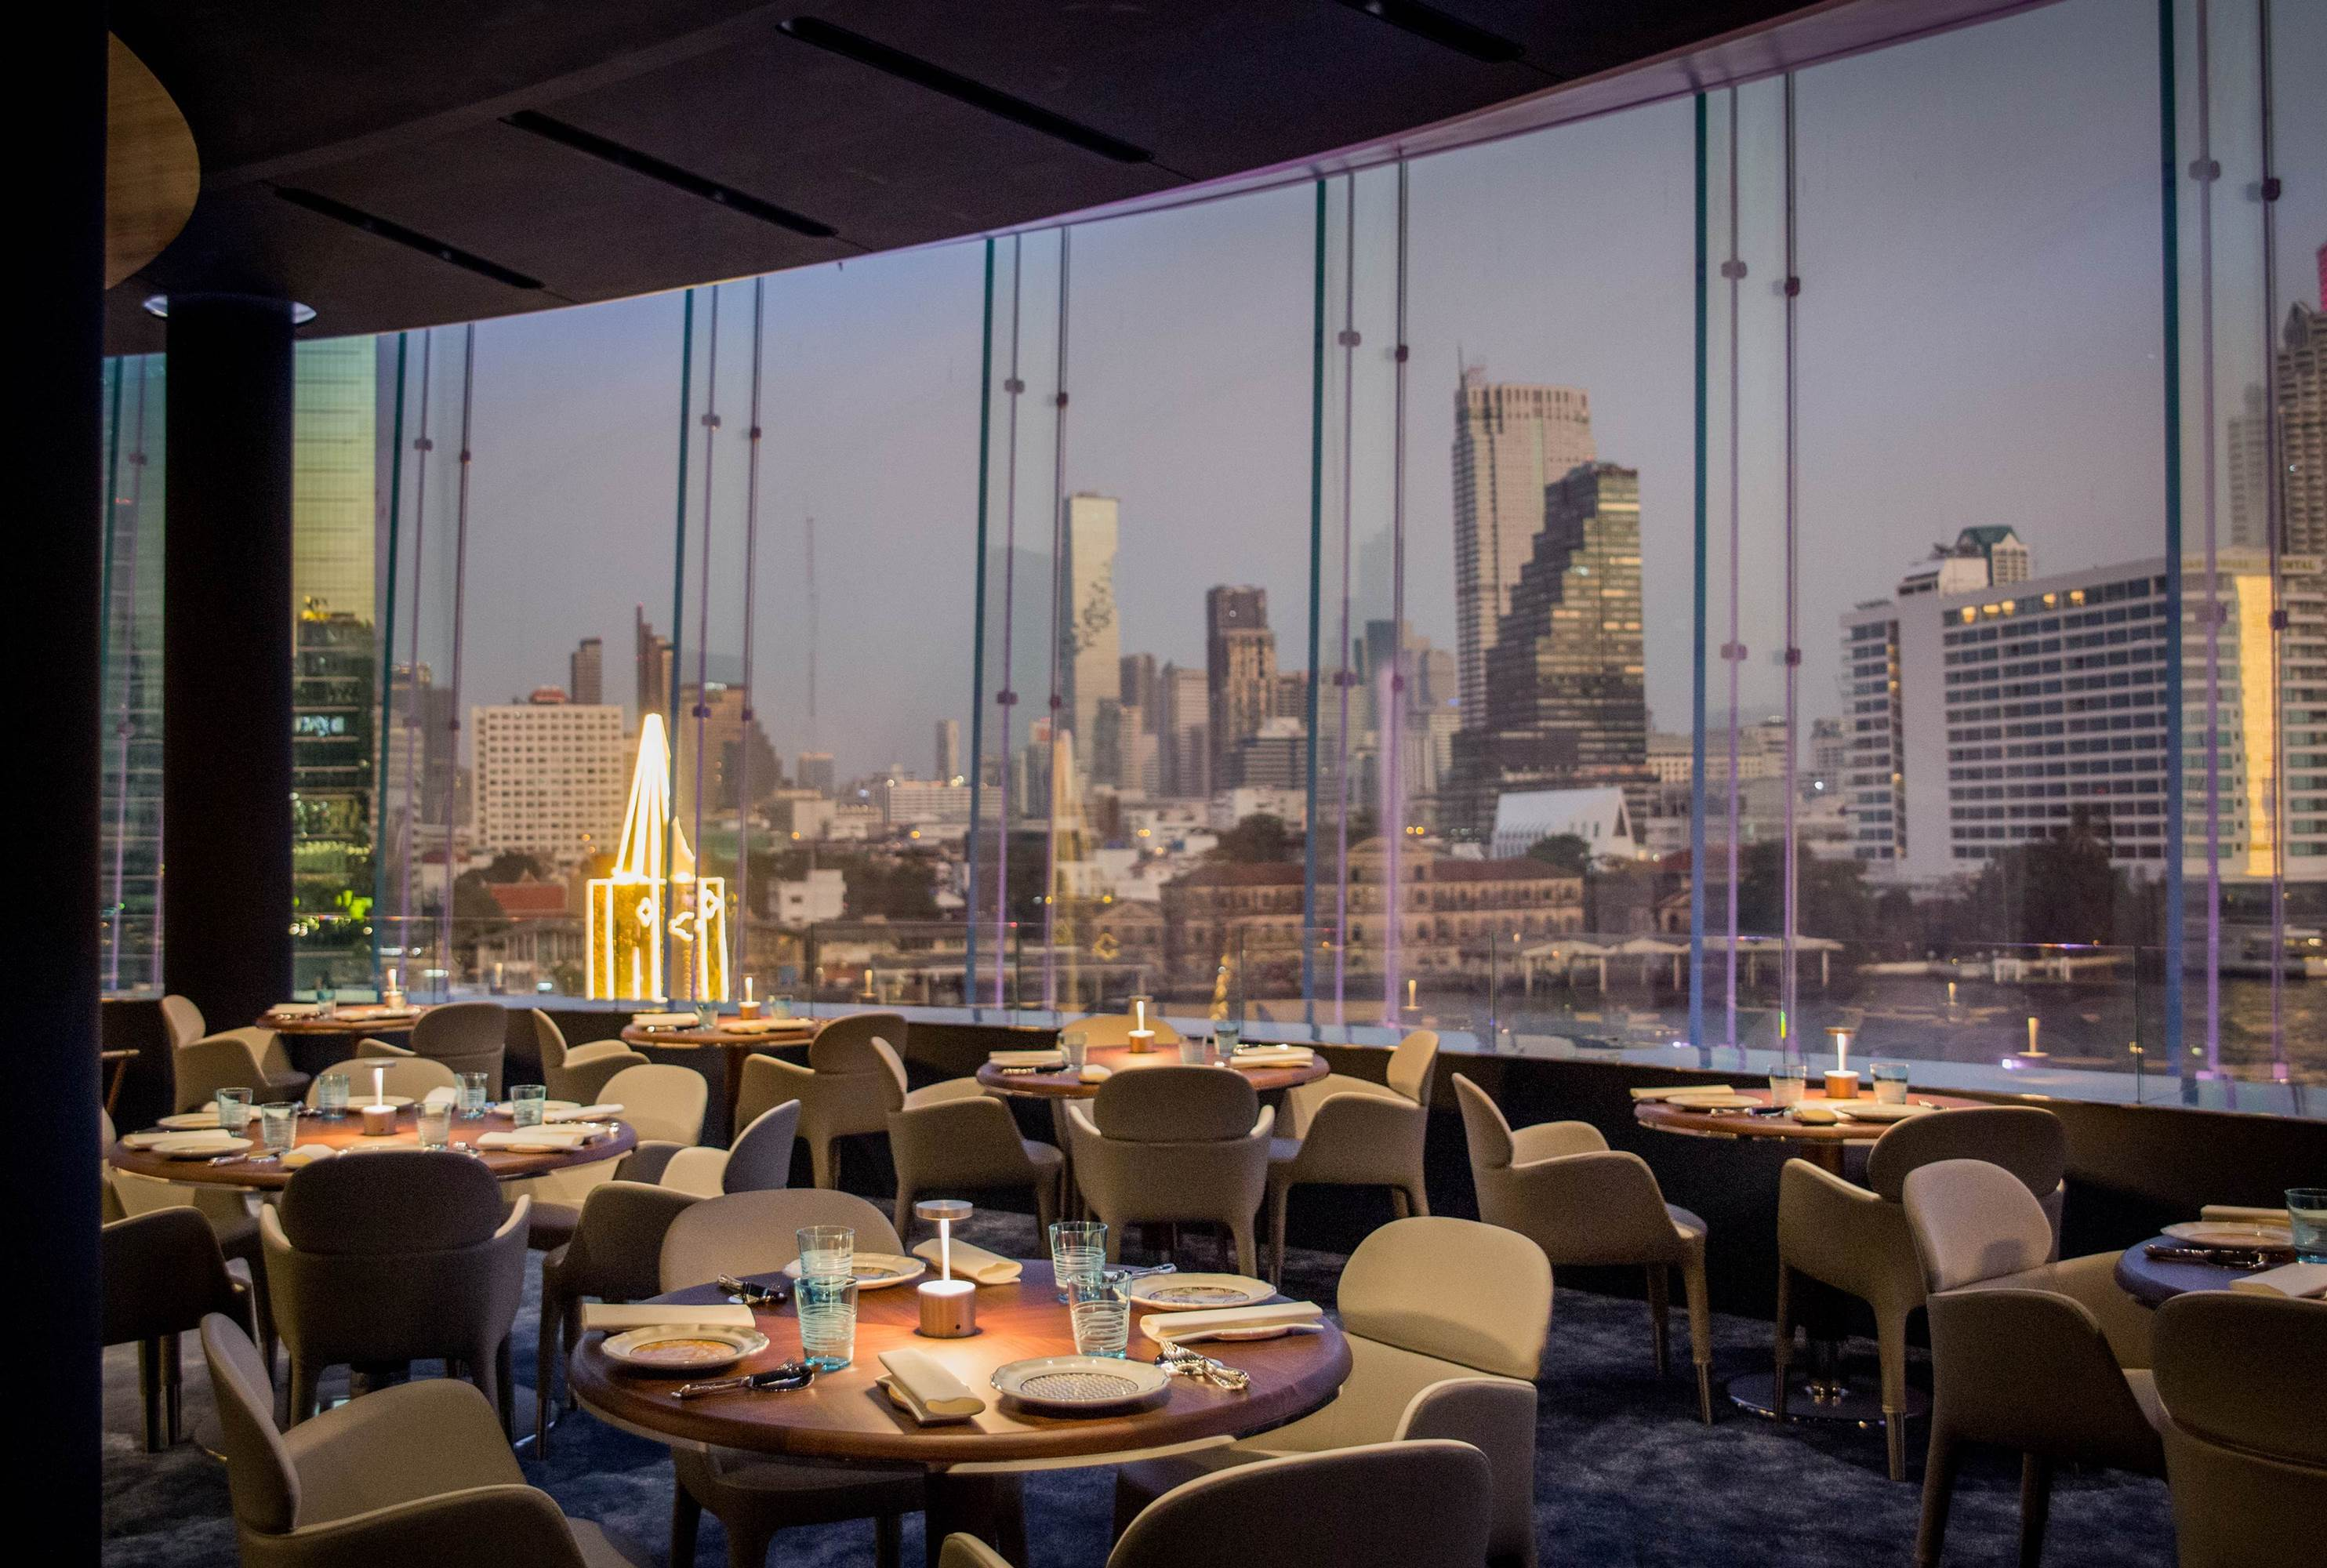 Blue by Alain Ducasse takes the splendid creations of the world's most legendary chef to the Chao Phraya River